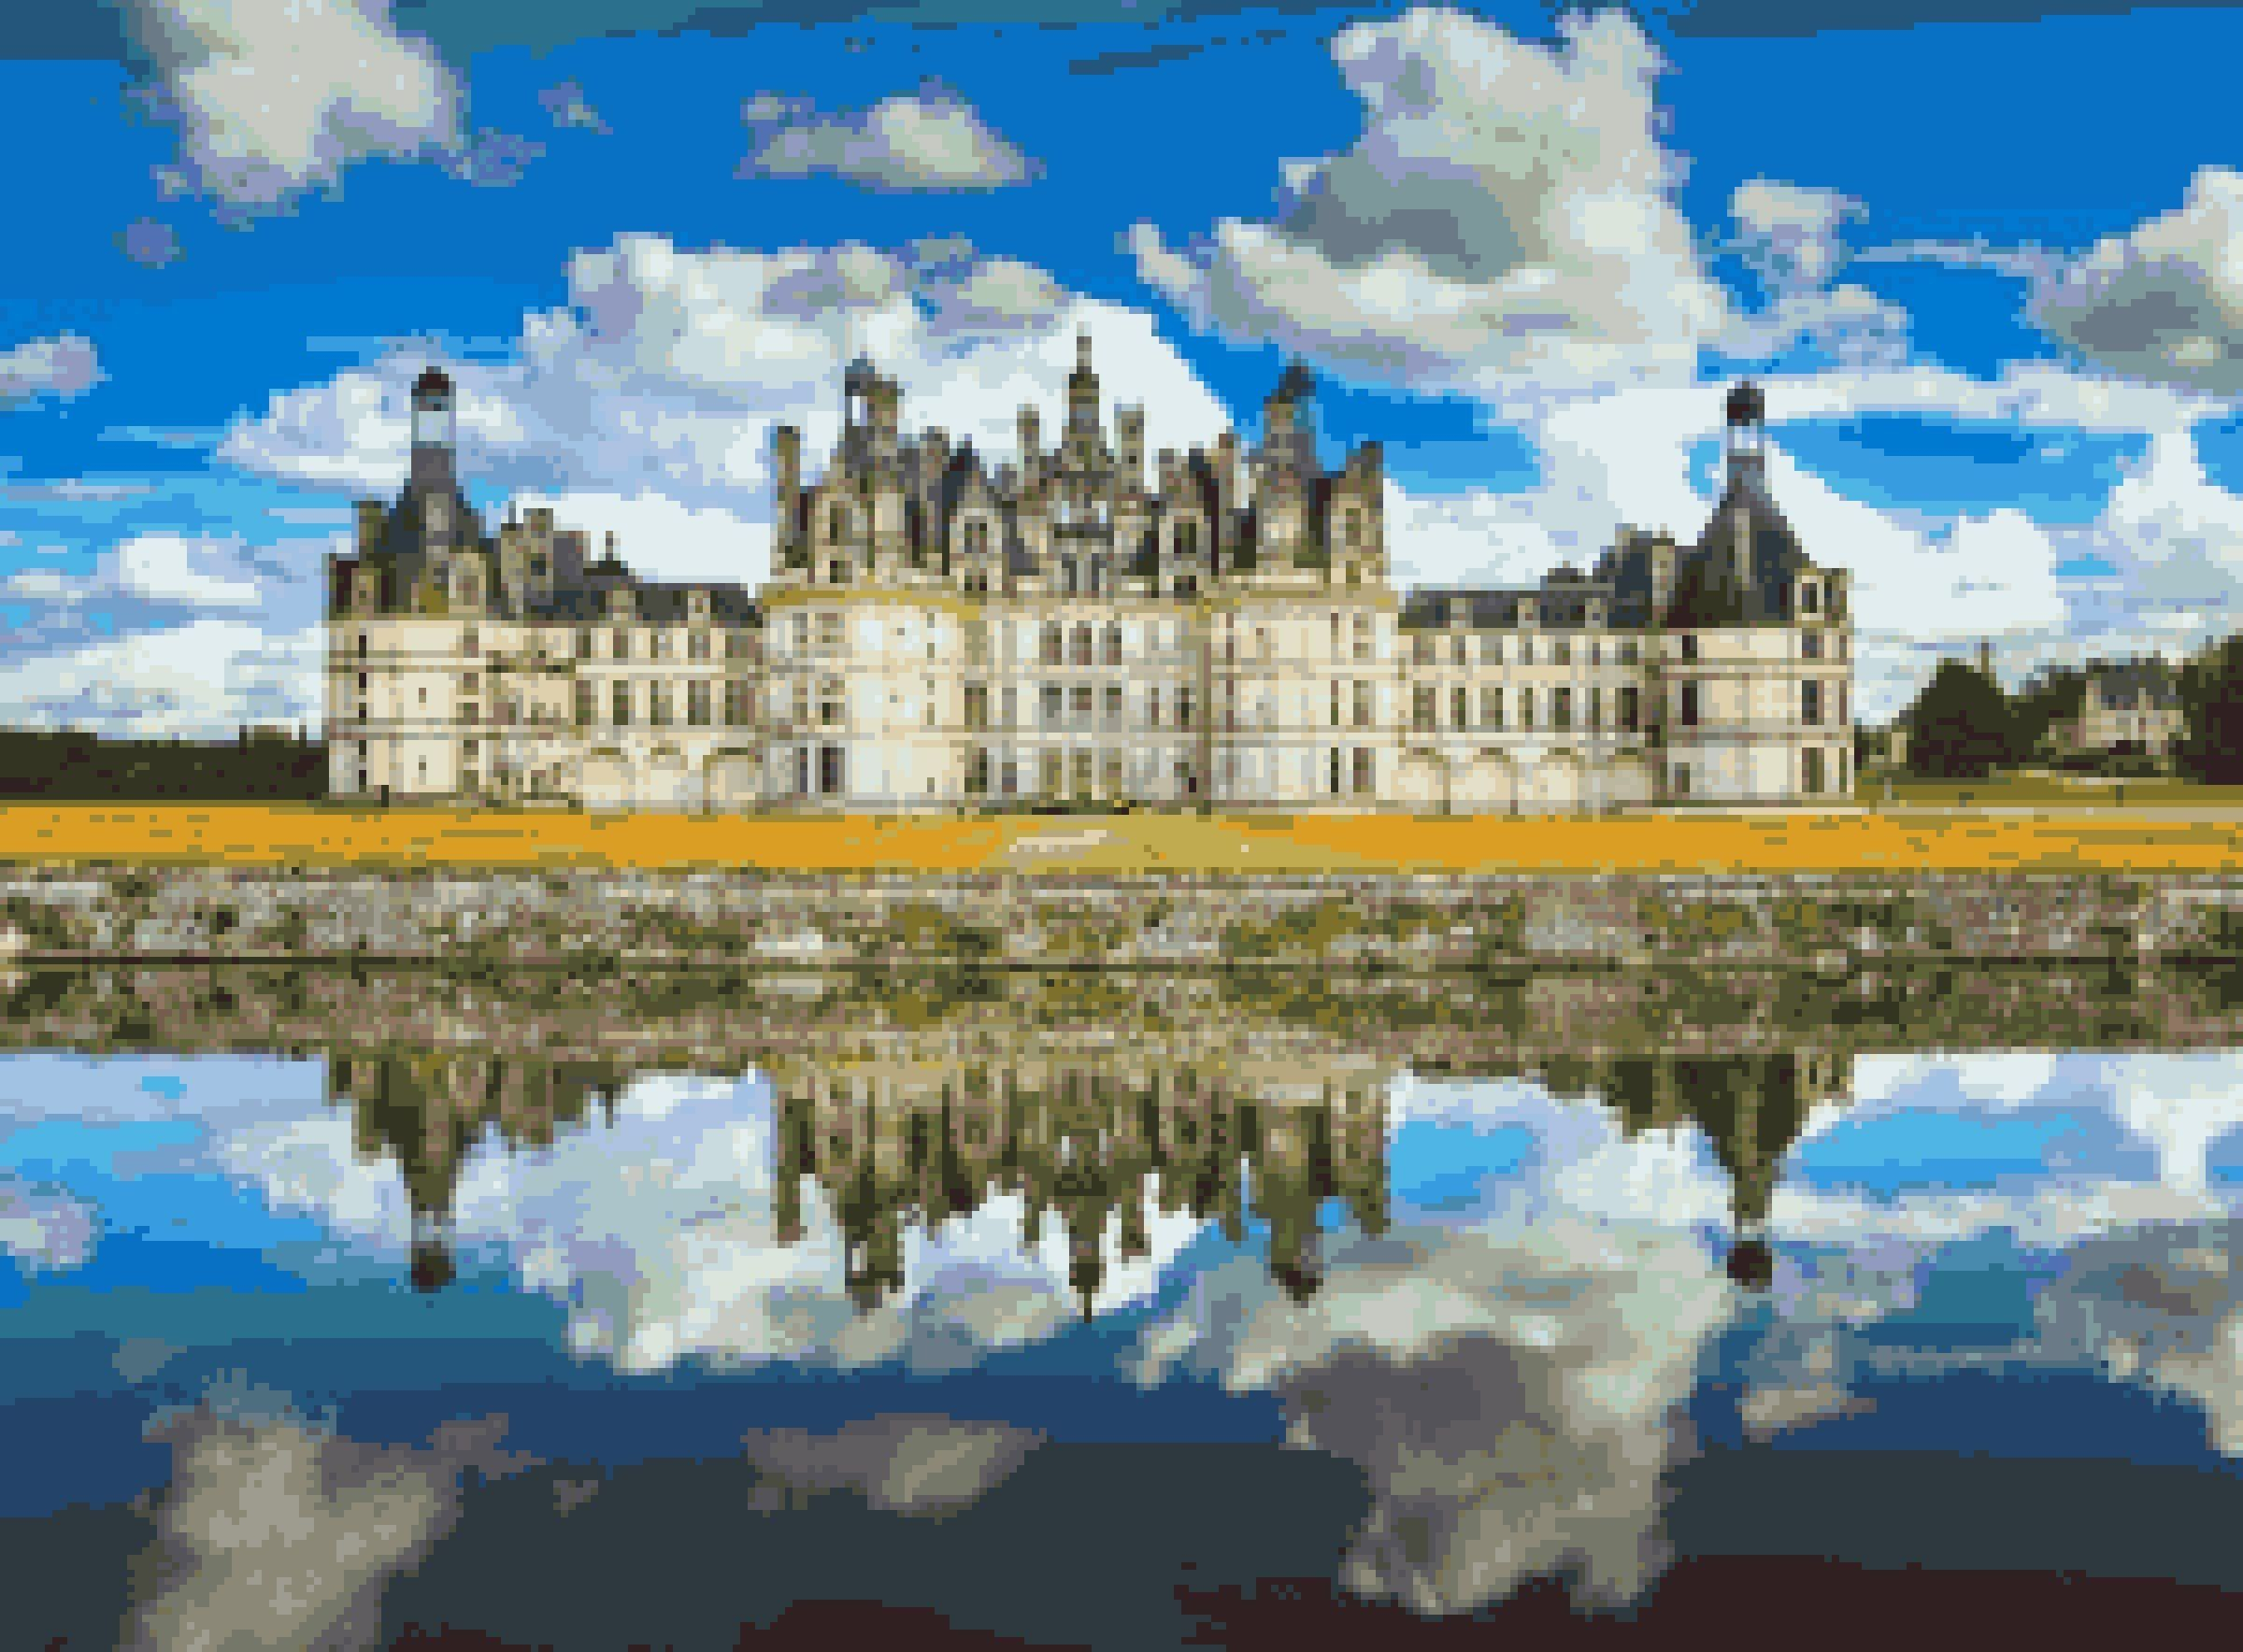 Chateau De Chambord Cross Stitch Pattern: French Castle Intended For Most Popular Chambord Castle I European Wall Hangings (View 18 of 20)